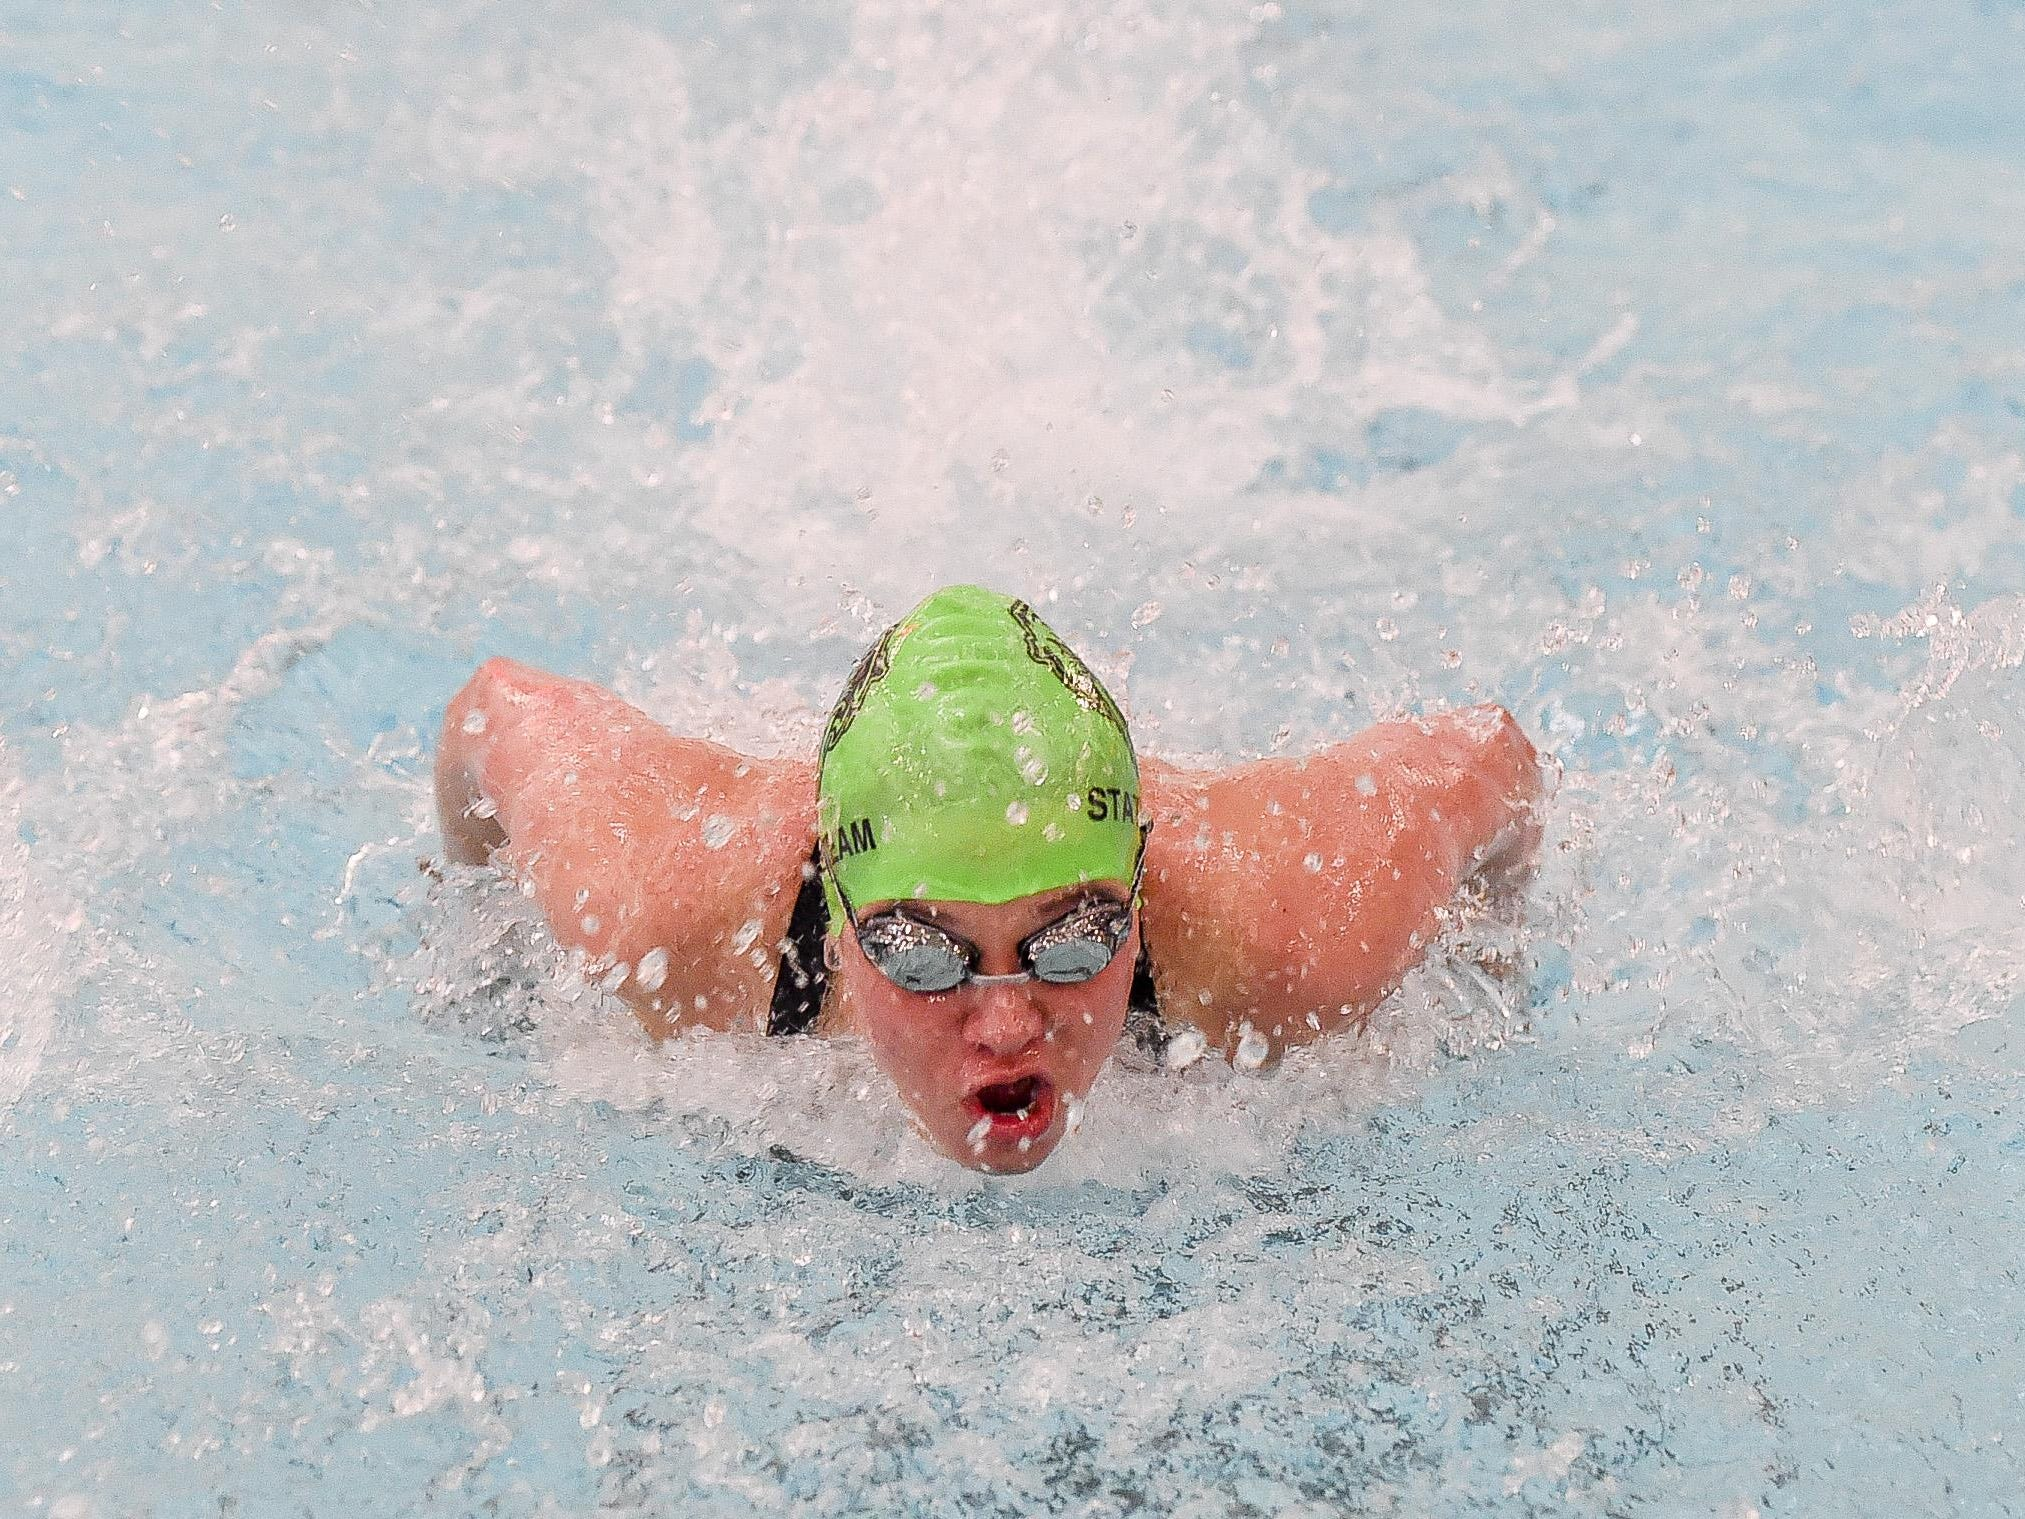 Fossil Ridge High School graduate Bailey Nero took second in the 100 butterfly at the U.S. Junior National Championships. She also finished eighth in the 200 butterfly, 10th in the 400 IM and 11th in the 200 IM.